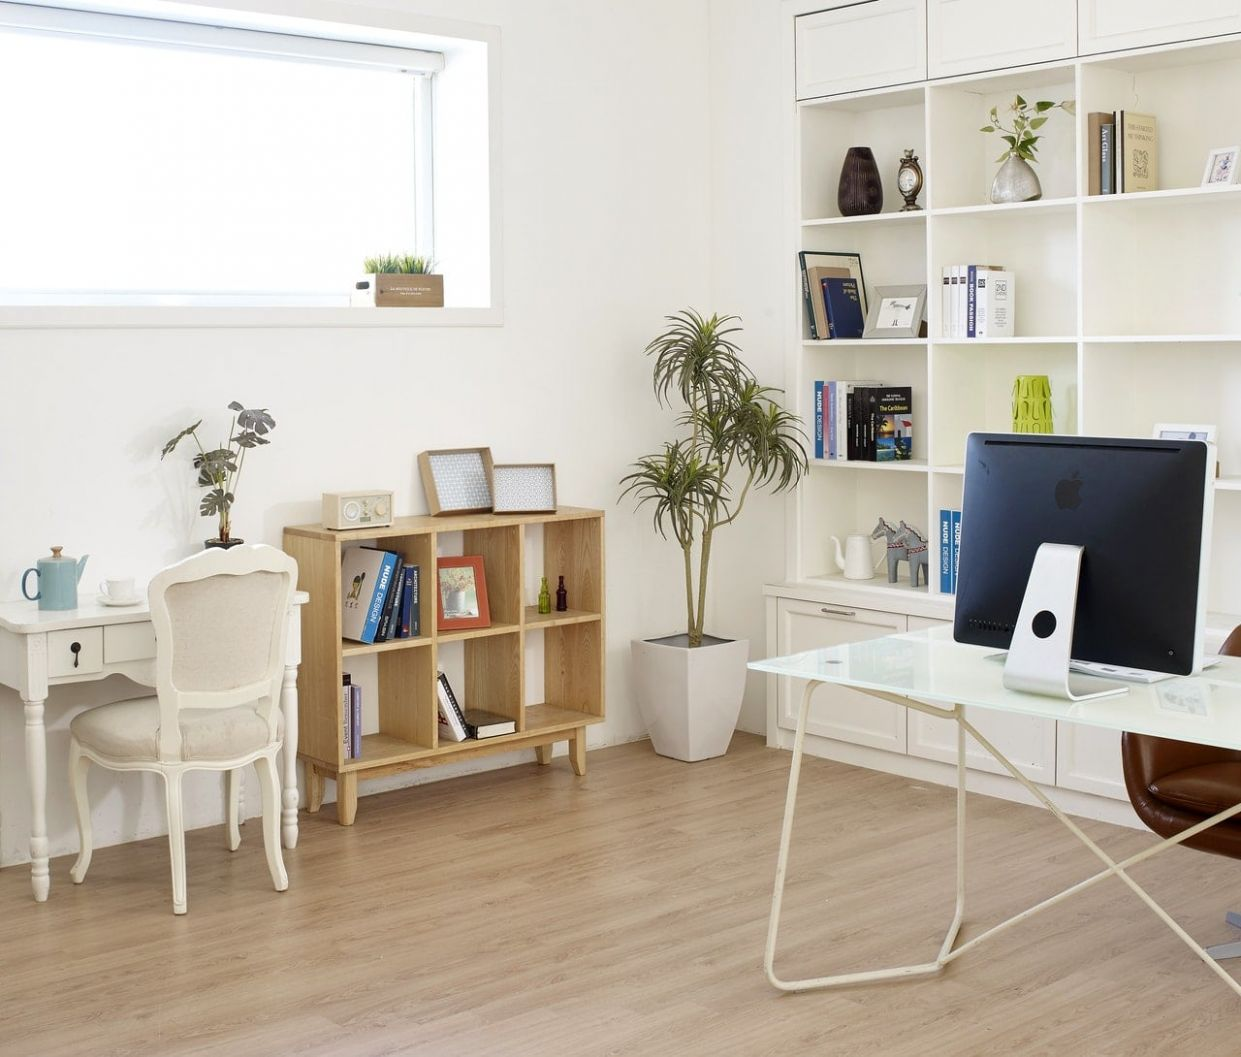 Home Office Ideas to Boost Productivity and Output - home office ideas living etc